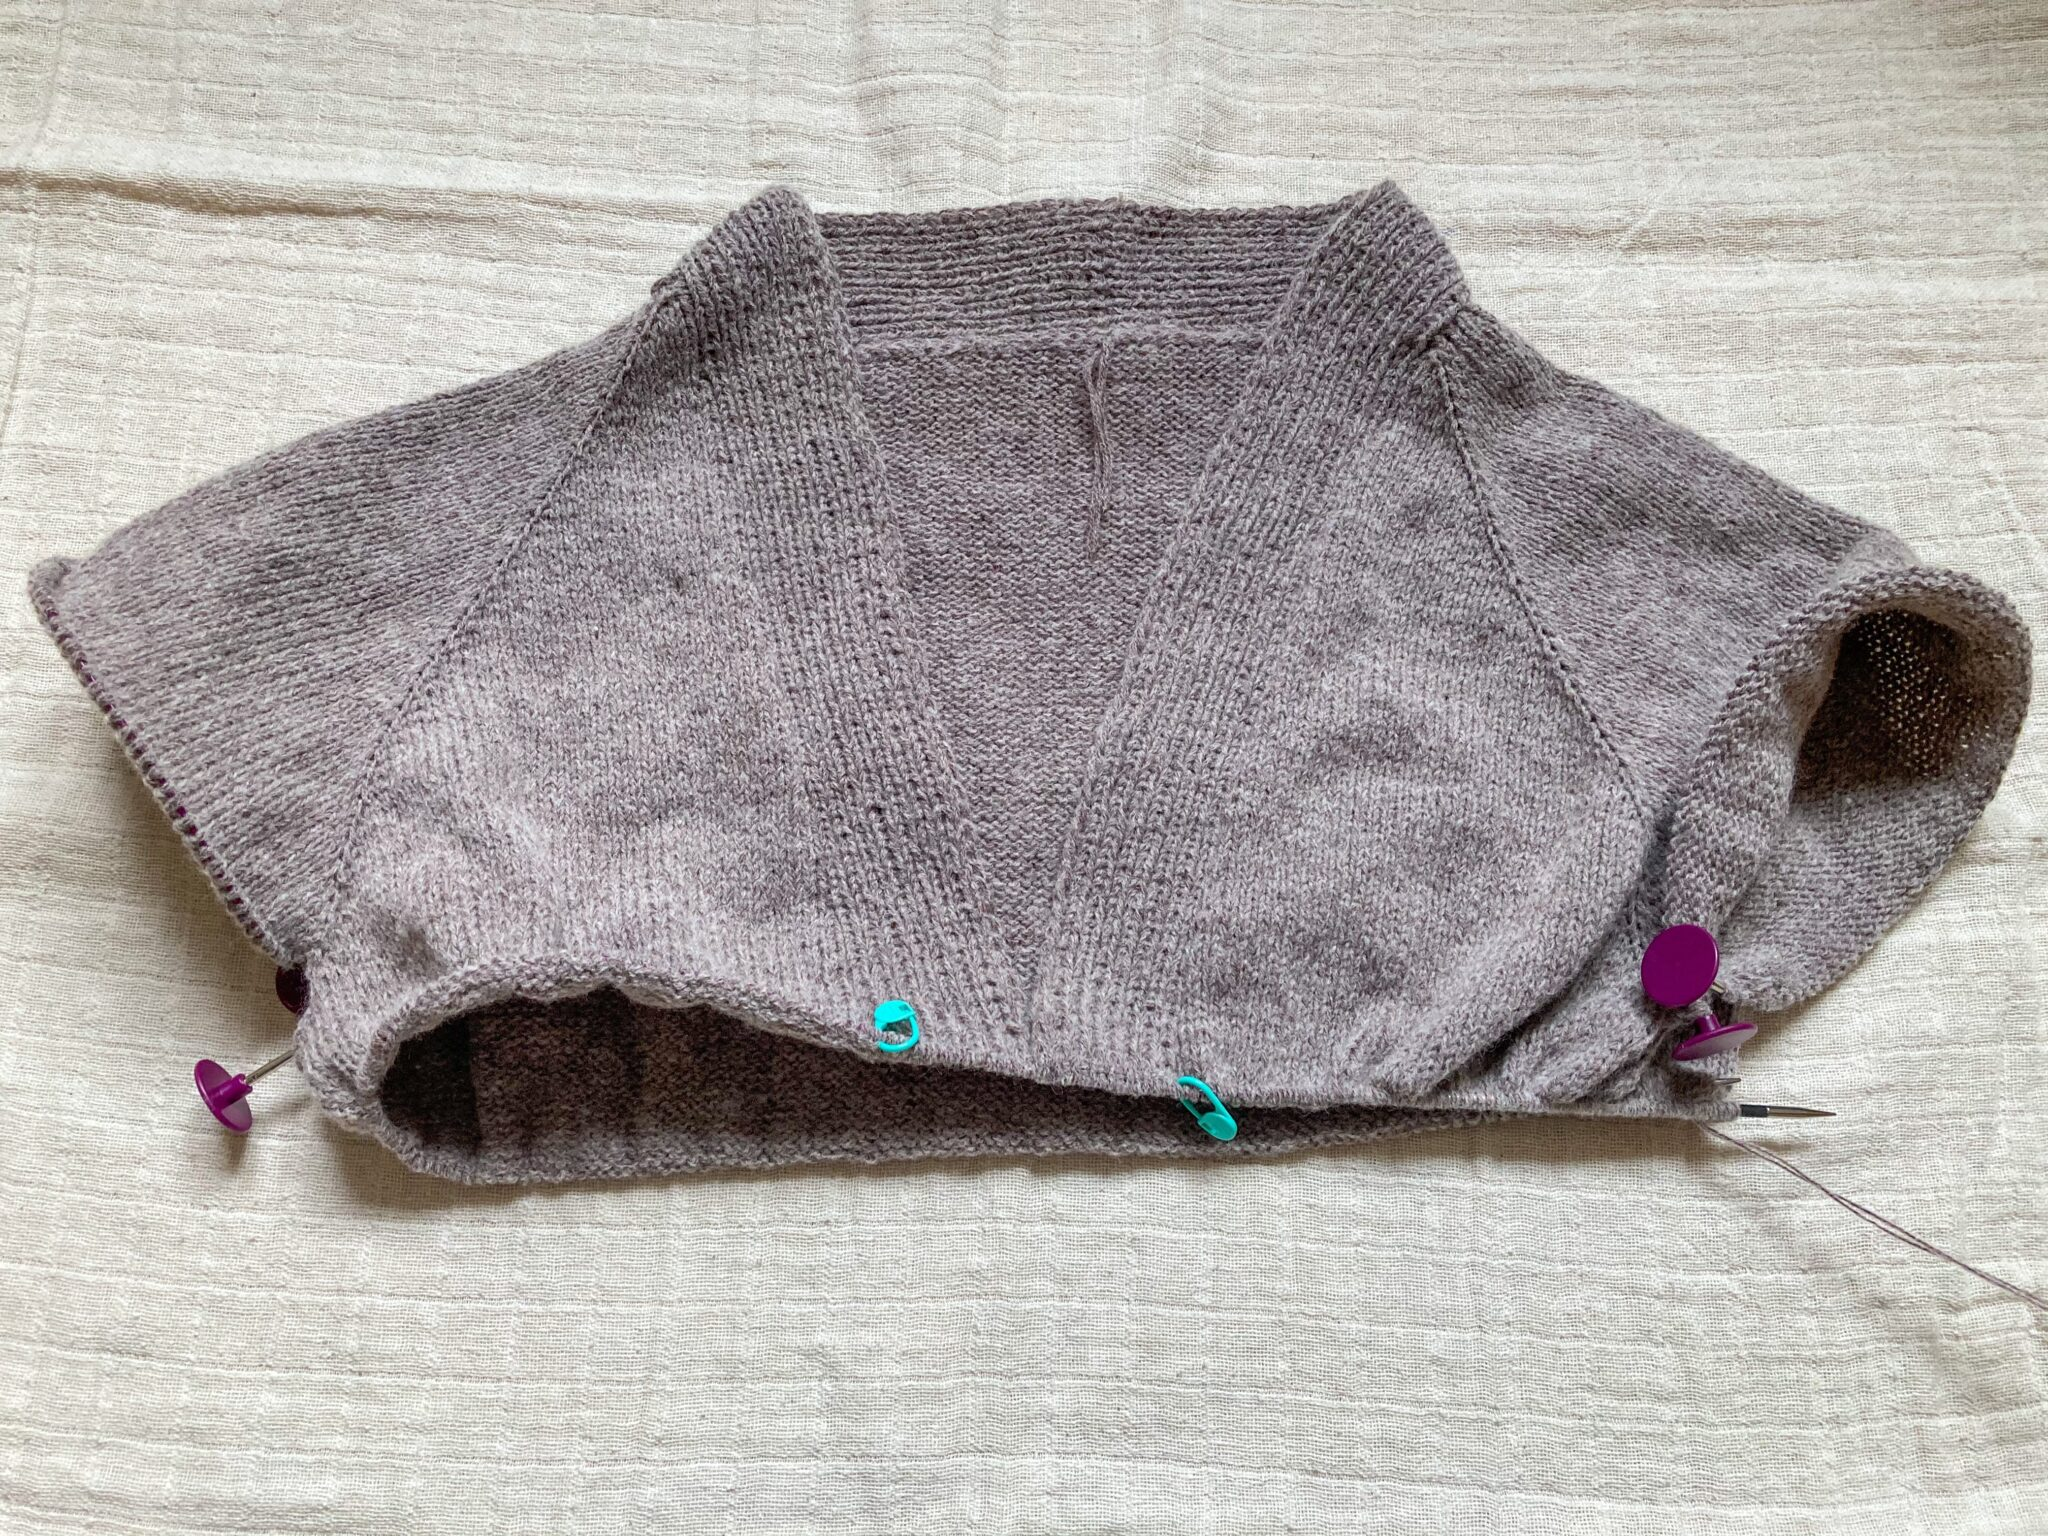 No Frills cardigan with sleeves separated.